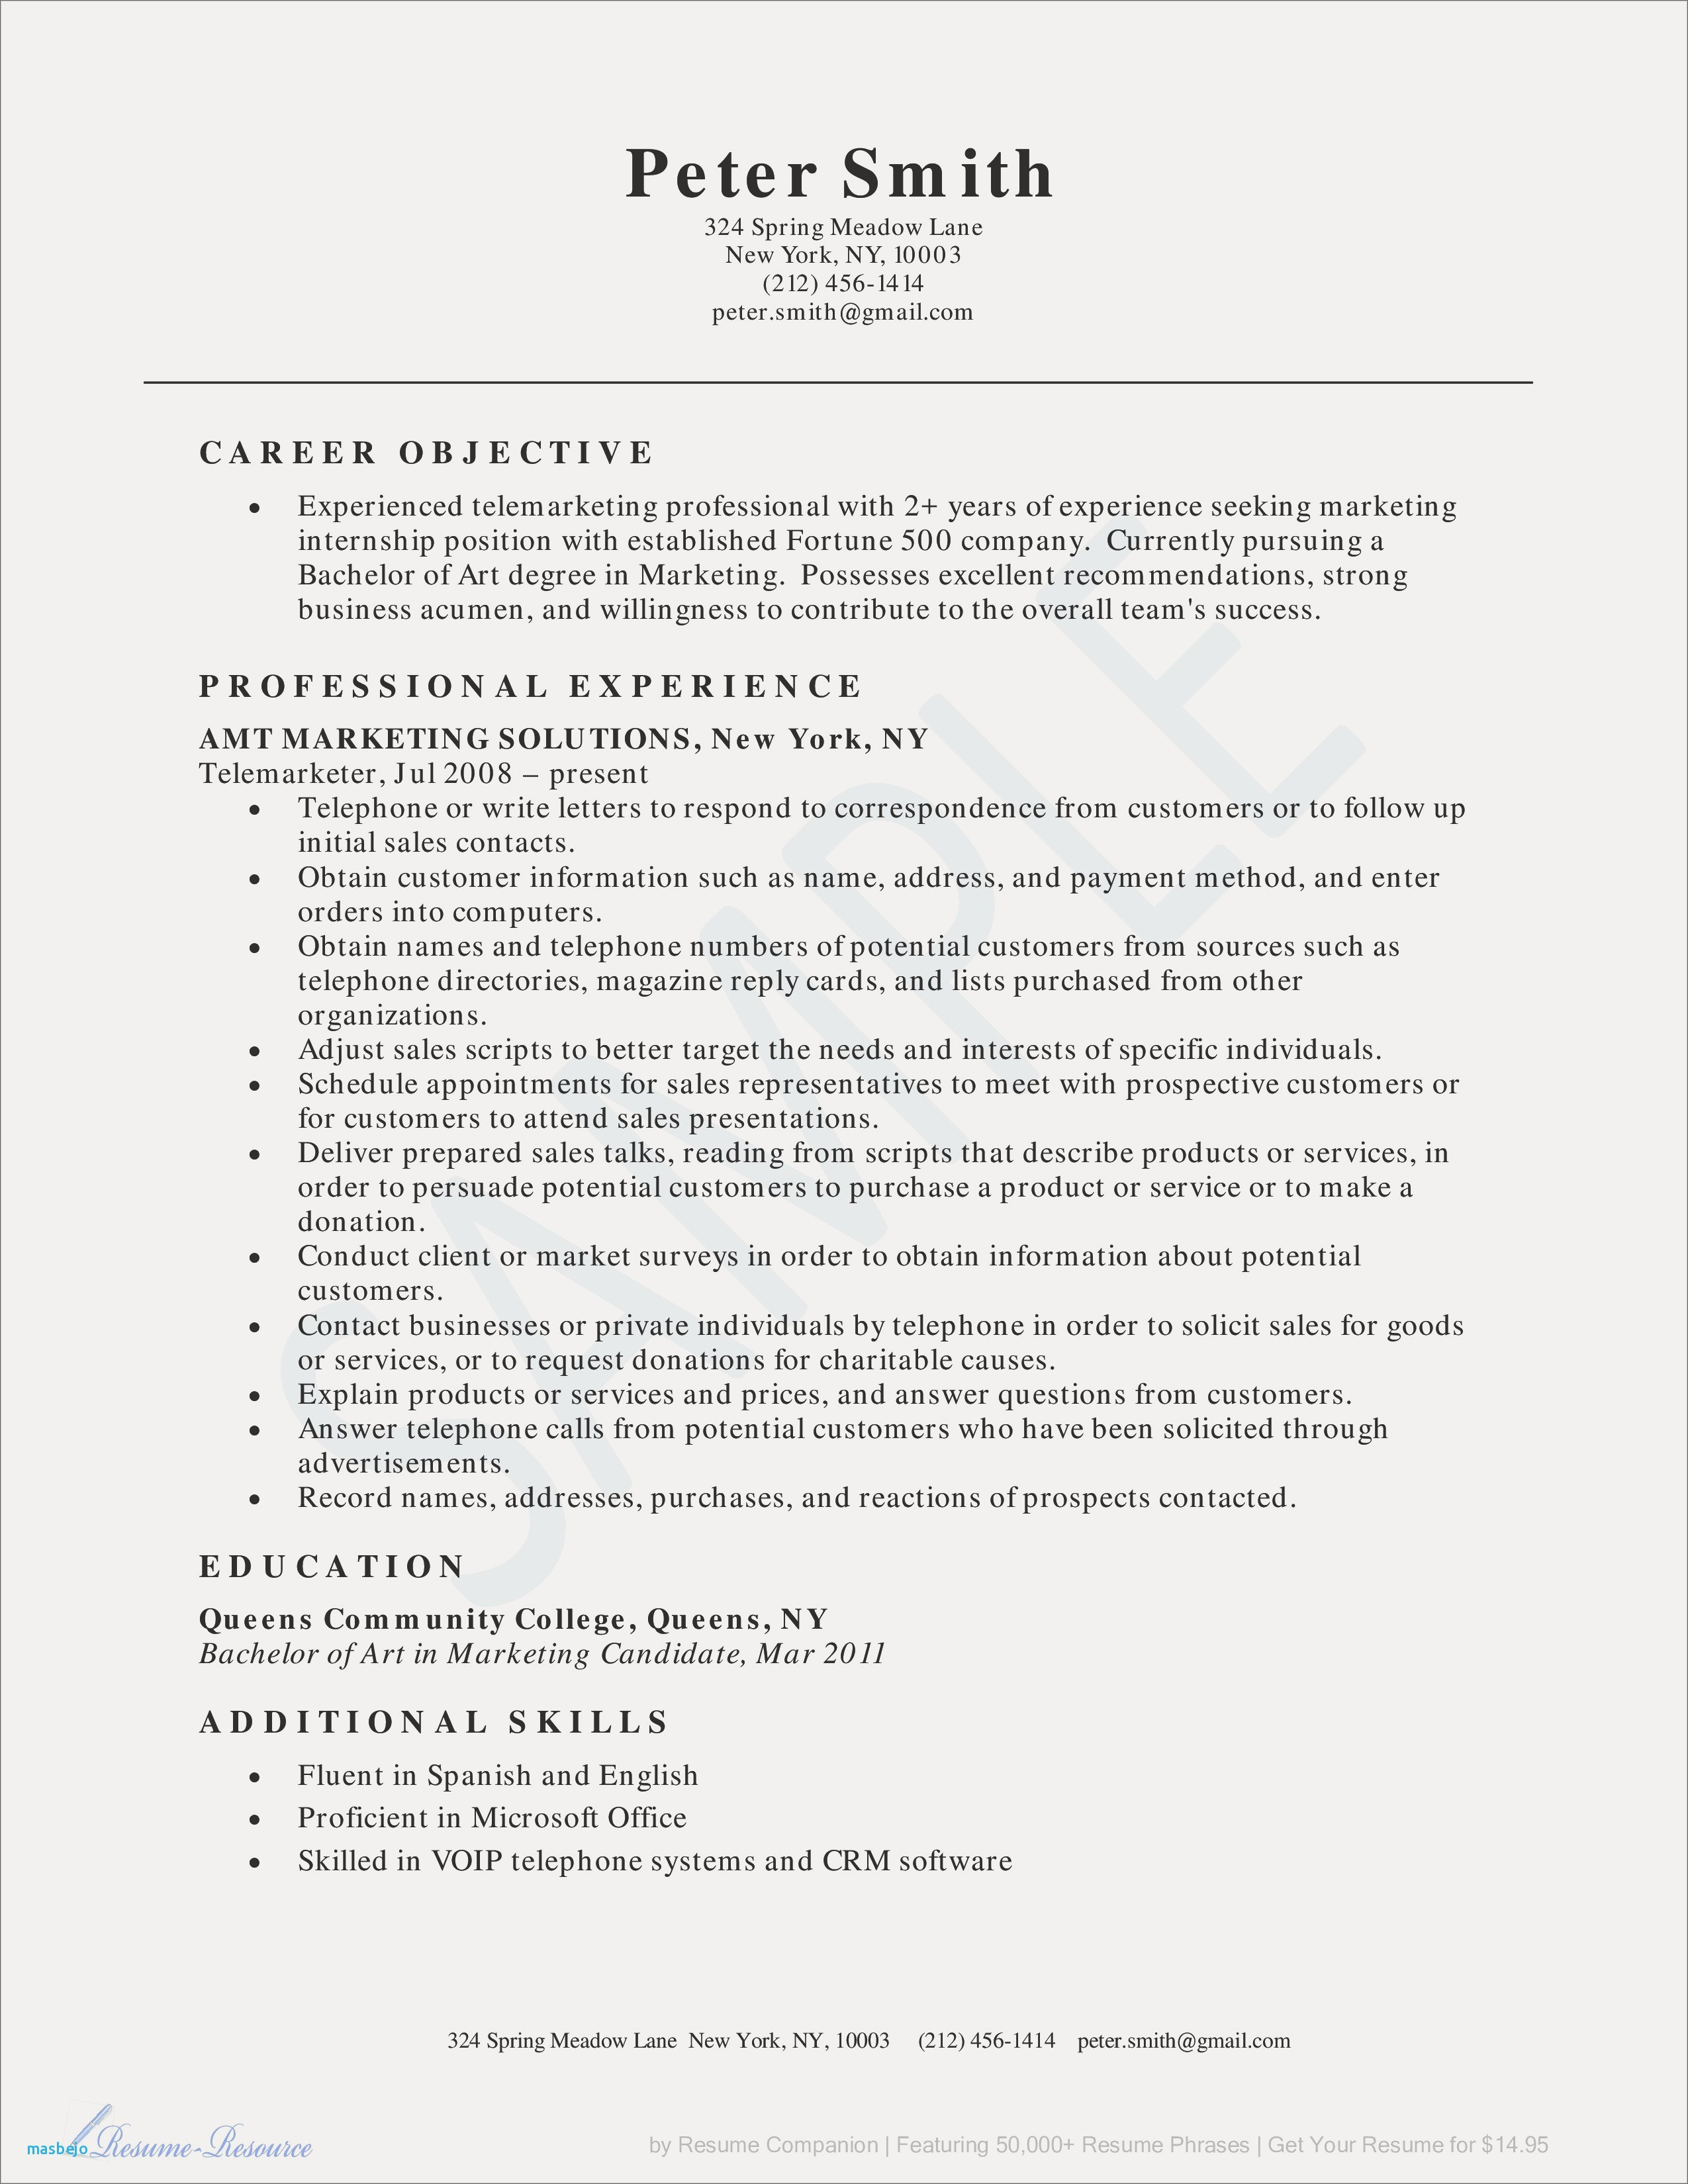 Internal Position Resume Examples - Microsoft Fice Sample Resume New Sales Resume Awesome How Can I Do